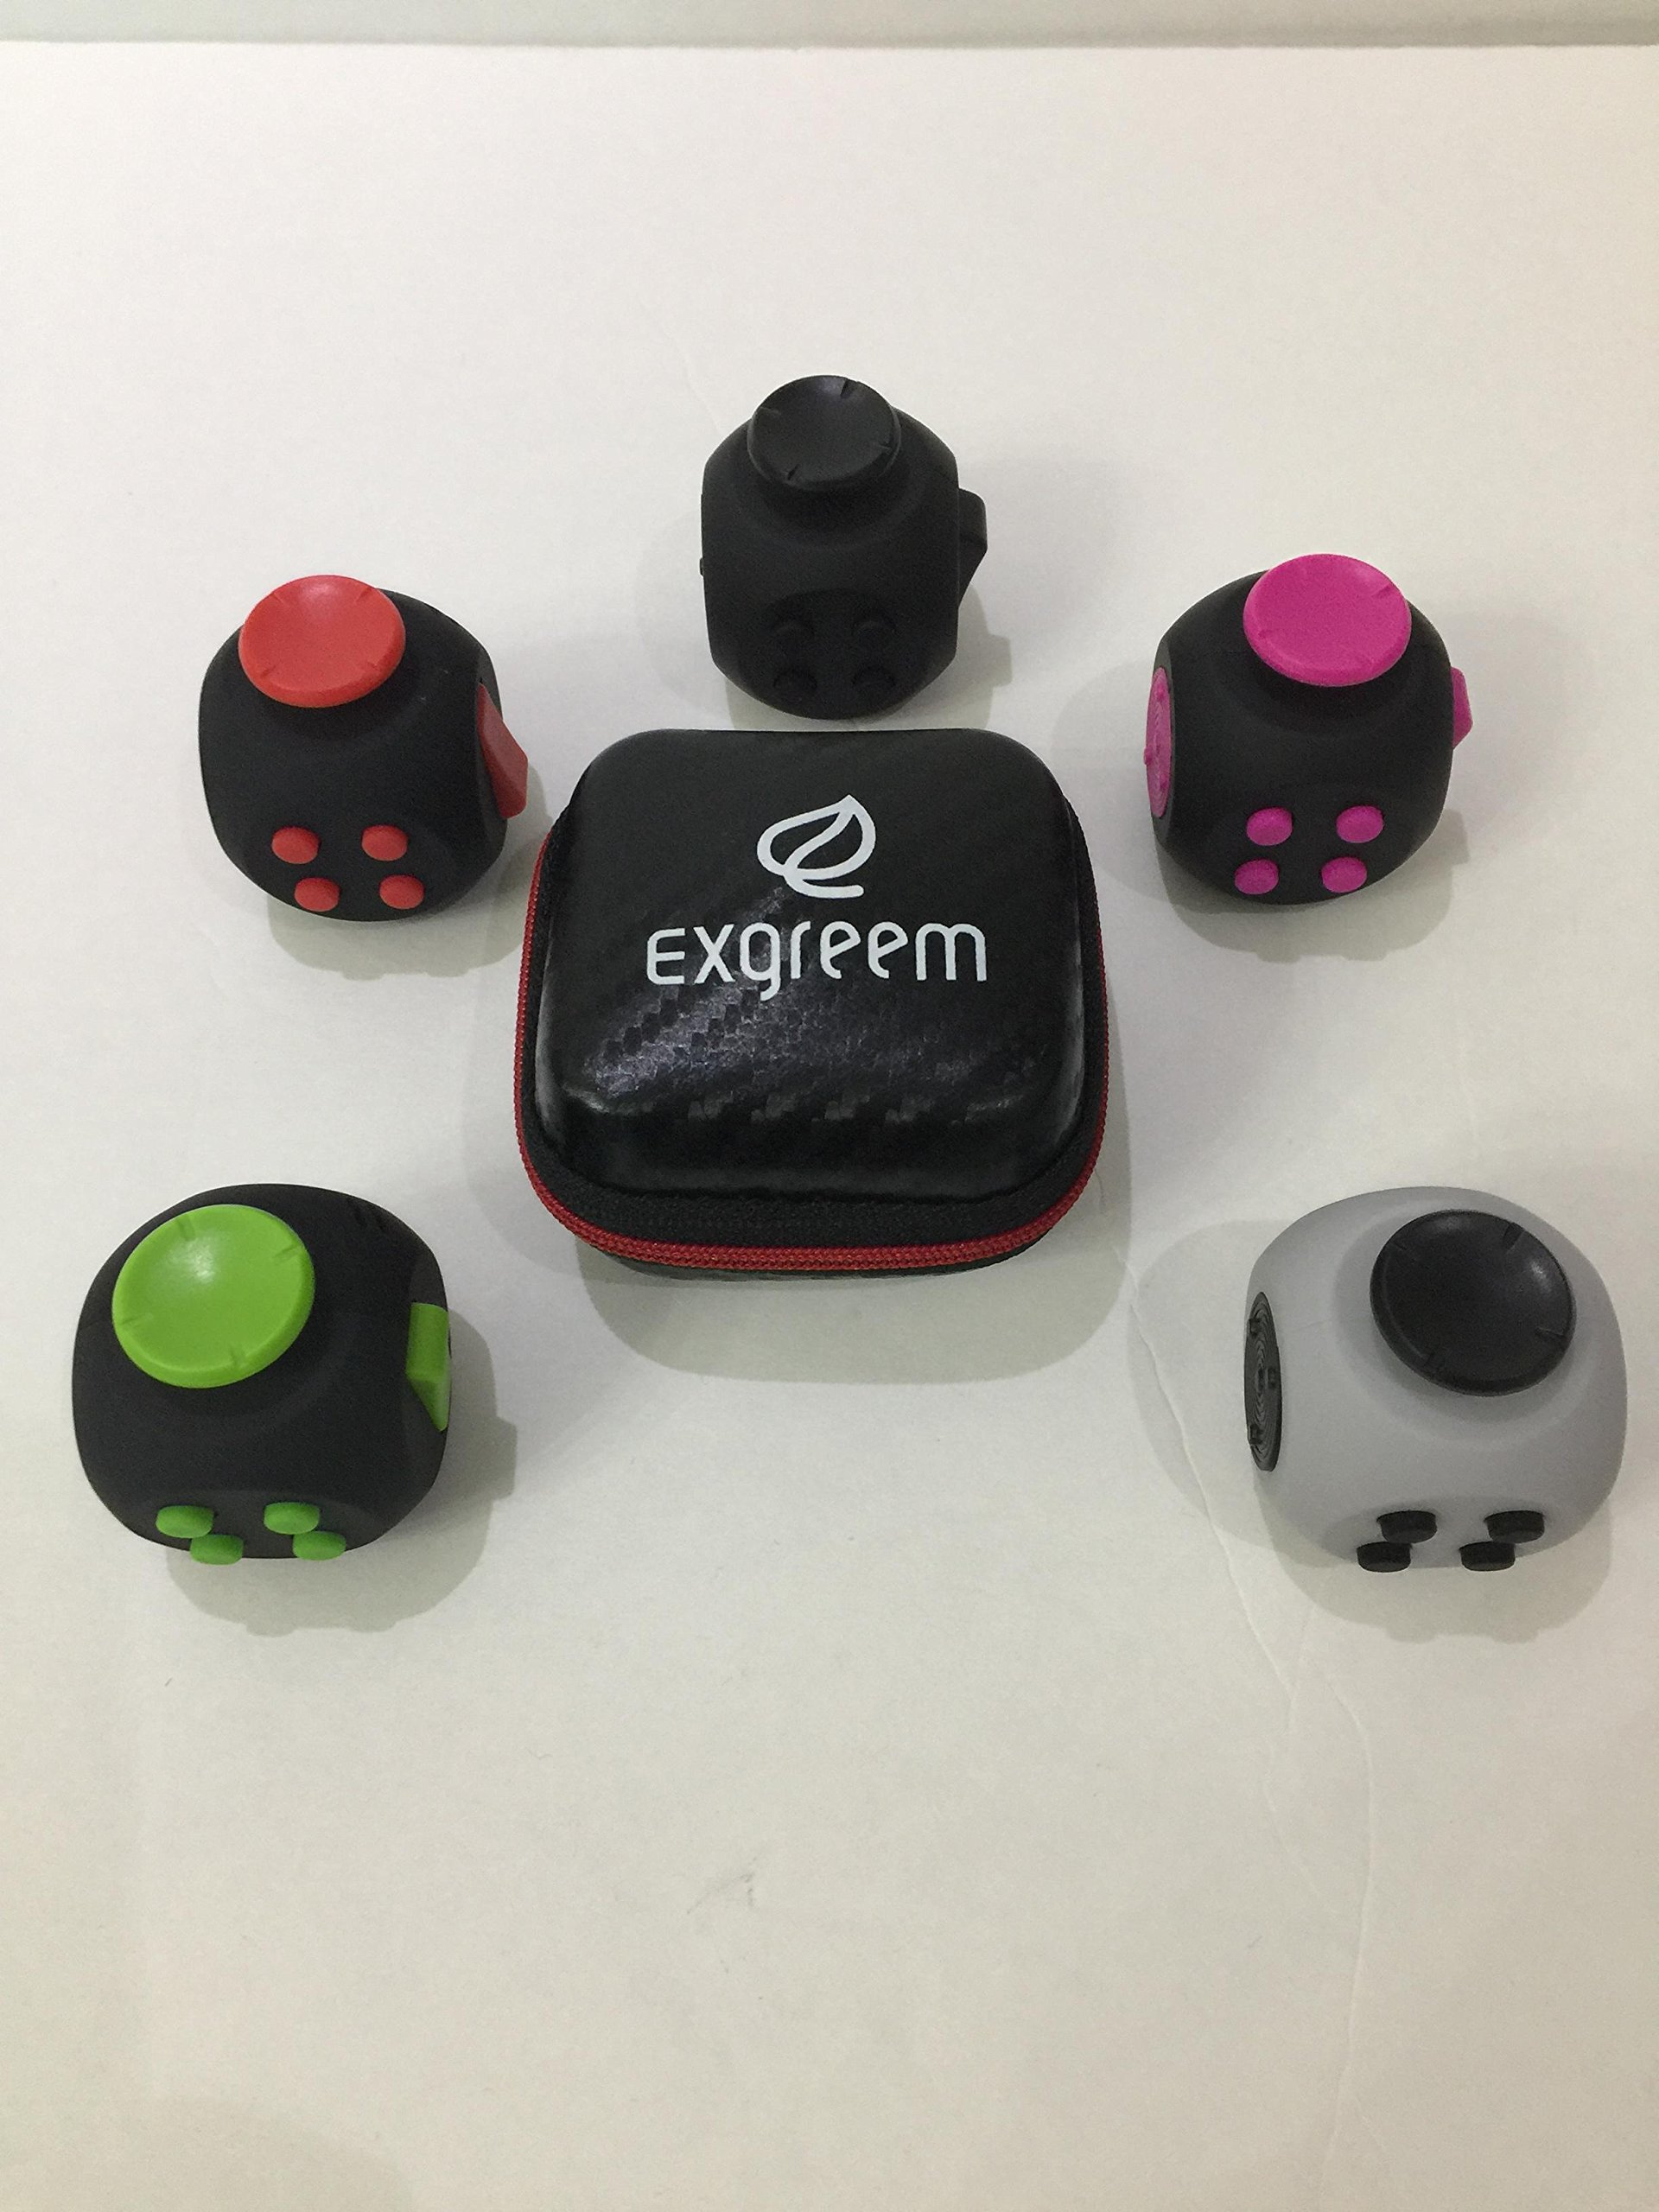 Exgreem 2017 NEW Third Generation Upgraded Version Fidget Cube, Anti-anxiety and Depression Cube for Children and Adults (Black)